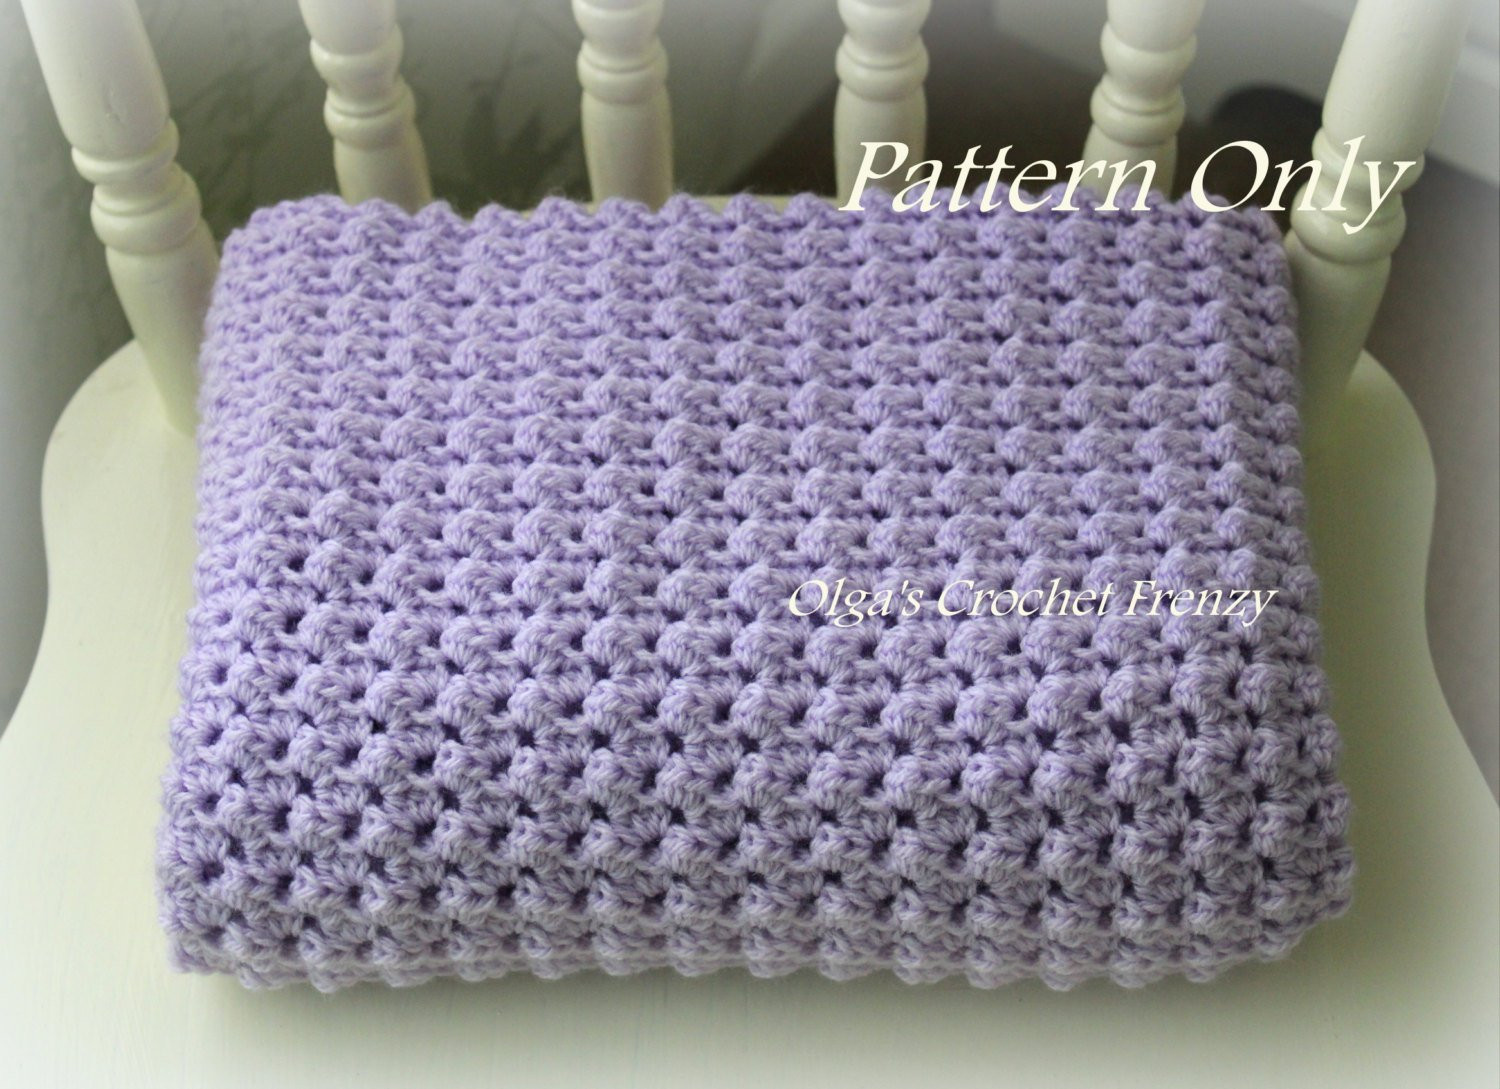 Awesome Crochet Baby Blanket Pattern Baby Afghan Easy to Make for Simple Crochet Baby Blanket Of Marvelous 48 Pictures Simple Crochet Baby Blanket